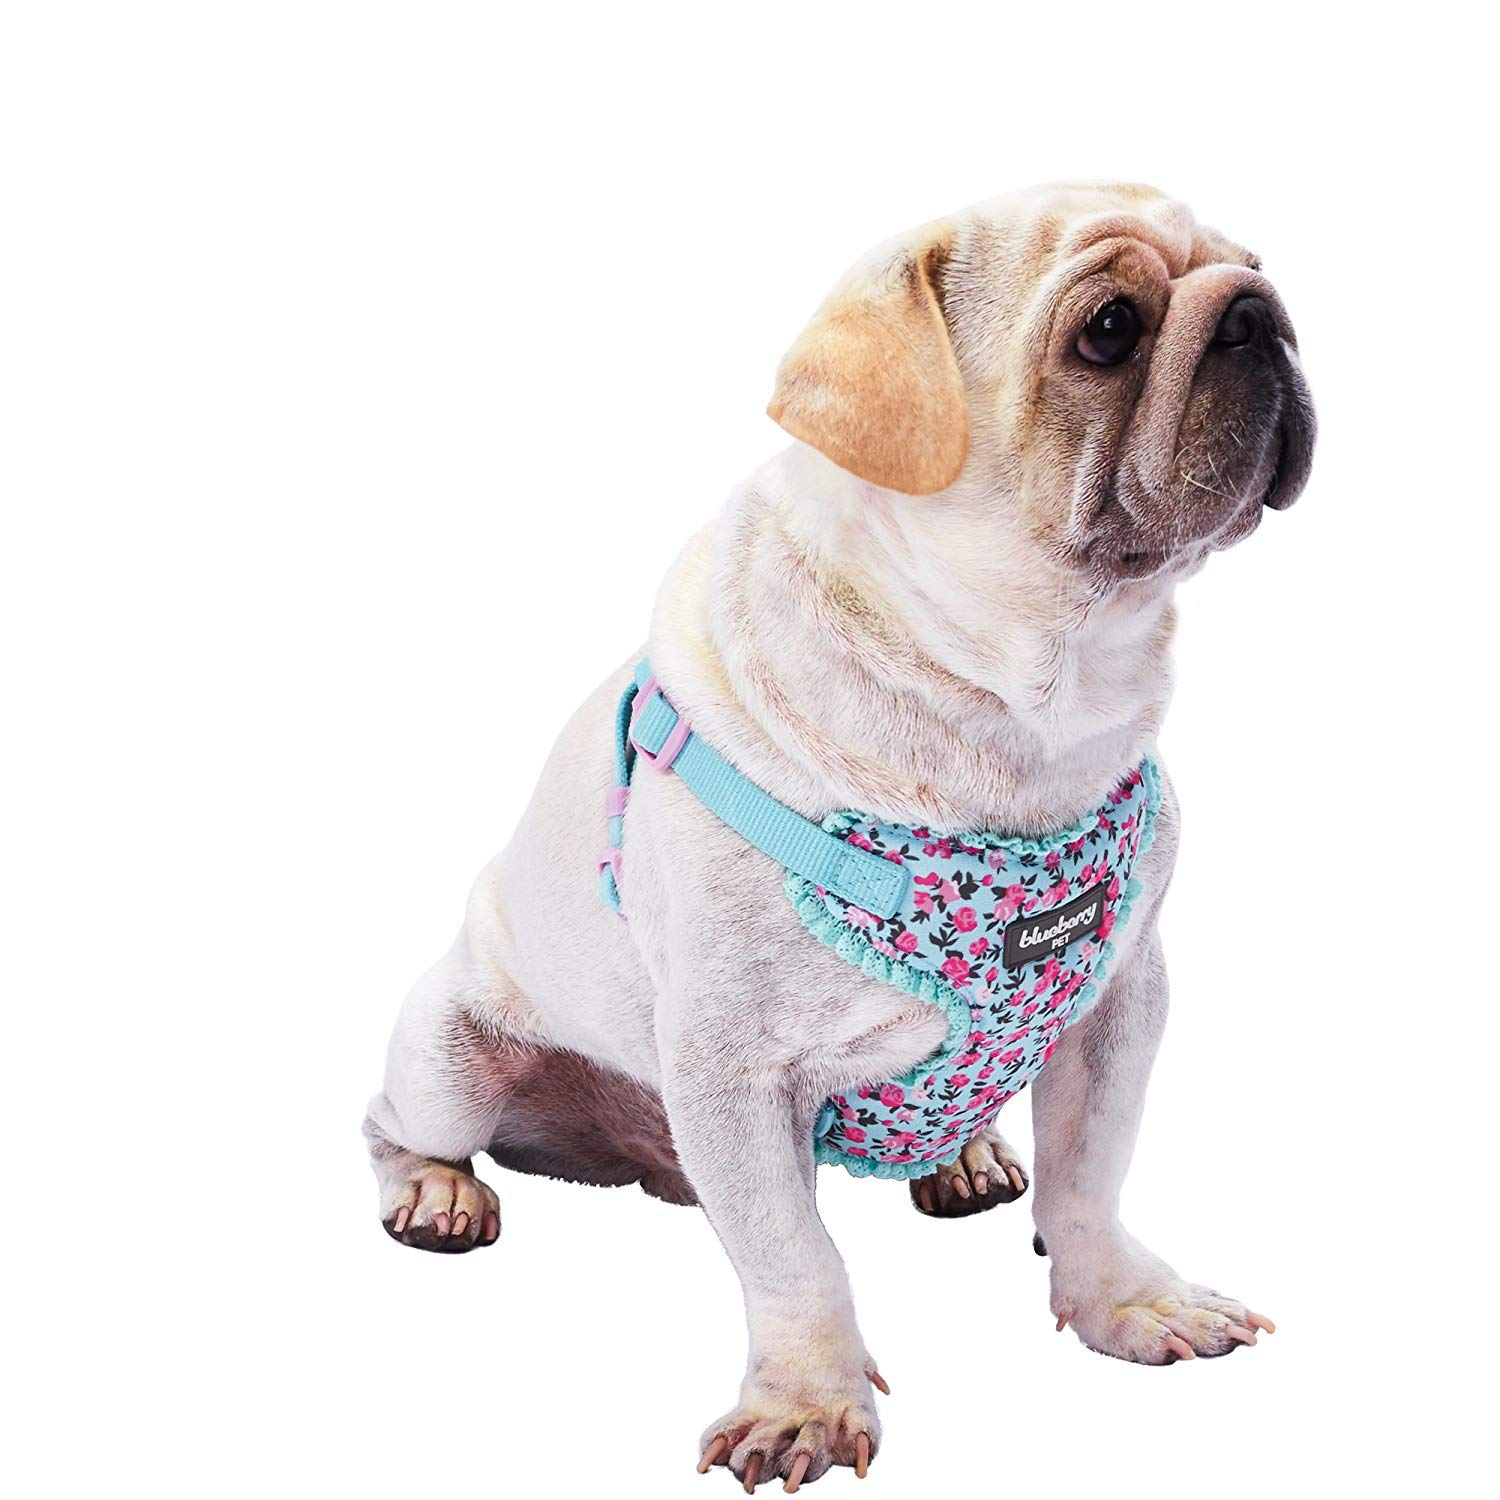 Chest Girth 20-26 Adjustable Harnesses for Dogs Medium Blueberry Pet New Step-in Spring Scent Inspired Rose Print Irish Blue Dog Harness